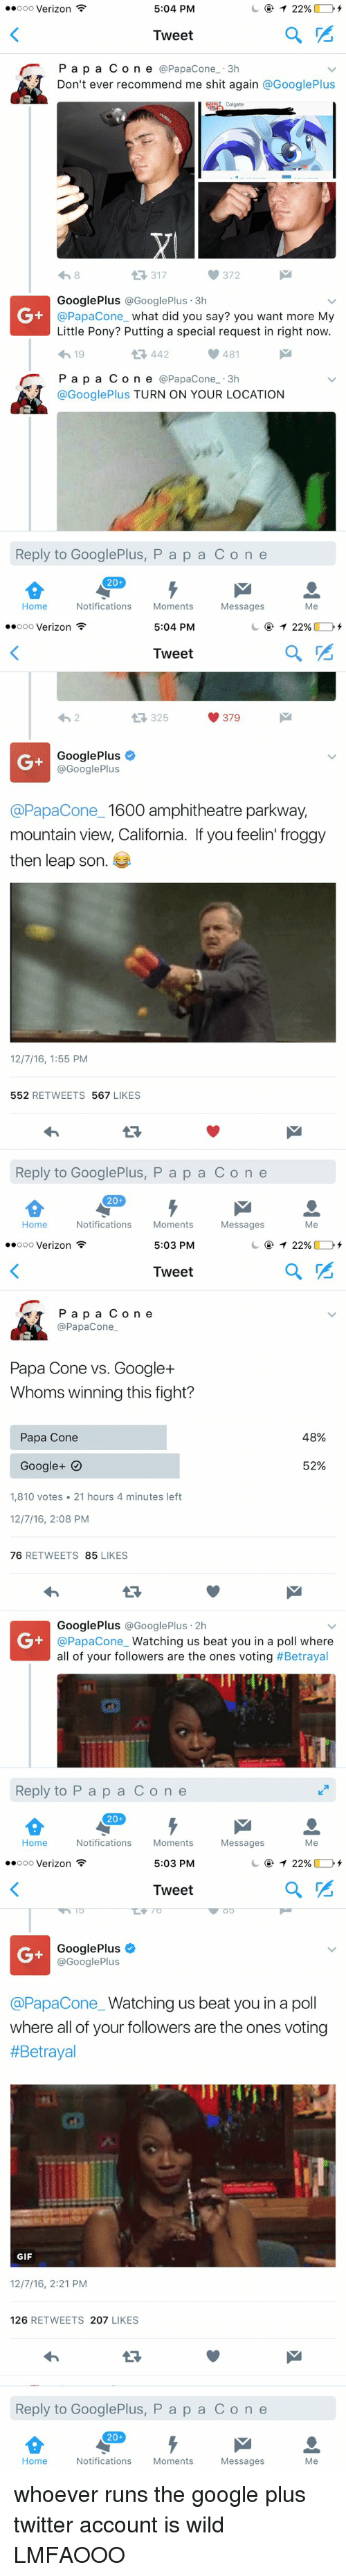 Funny, Gif, and Google: 5:04 PM  T 22%  ooooo Verizon  Tweet  r P a p a C o n e  @Papac one 3h  Don't ever recommend me shit again  @Google Plus  Colgate  317  Google Plus  @Google Plus 3h  @Papacone what did you say? you want more My  Little Pony? Putting a special request in right now.  481  4h 19  442  P a p a C o n e  a Papac one 3h  @Google Plus TURN ON YOUR LOCATION  Reply to Google Plus, P a p a C o n e  20  Notifications  Moments  Home  Messages  Me   5:04 PM  22%  ooooo Verizon  Tweet  379  325  Google Plus  @Google Plus  @Papacone 1600 amphitheatre parkway,  mountain view, California. If you feelin' froggy  then leap son  12/7/16, 1:55 PM  552  RETWEETS  567  LIKES  Reply to GooglePlus, P a p a C o n e  20  Home  Notifications  Moments  Messages  Me   5:03 PM  T 22%  ooooo Verizon  a  Tweet  P a p a C o n e  Papac one  Papa Cone vs. Google  Whoms winning this fight?  48%  Papa Cone  52%  Google  1,810 votes 21 hours 4 minutes left  12/7/16, 2:08 PM  76  RETWEETS  85  LIKES  Google Plus Google Plus 2h  @Papa Cone  Watching us beat you in a poll where  all of your followers are the ones voting  #Betrayal  Reply to P a p a C o n e  20  Notifications  Moments  Home  Messages  Me   5:03 PM  T 22%  ooooo Verizon  a  Tweet  Google Plus  Google Plus  @Papacone Watching us beat you in a poll  where all of your followers are the ones voting  #Betrayal  GIF  12/7/16, 2:21 PM  126  RETWEETS  207  LIKES  Reply to GooglePlus, P a p a C o n e  20  Notifications  Moments  Home  Messages  Me whoever runs the google plus twitter account is wild LMFAOOO